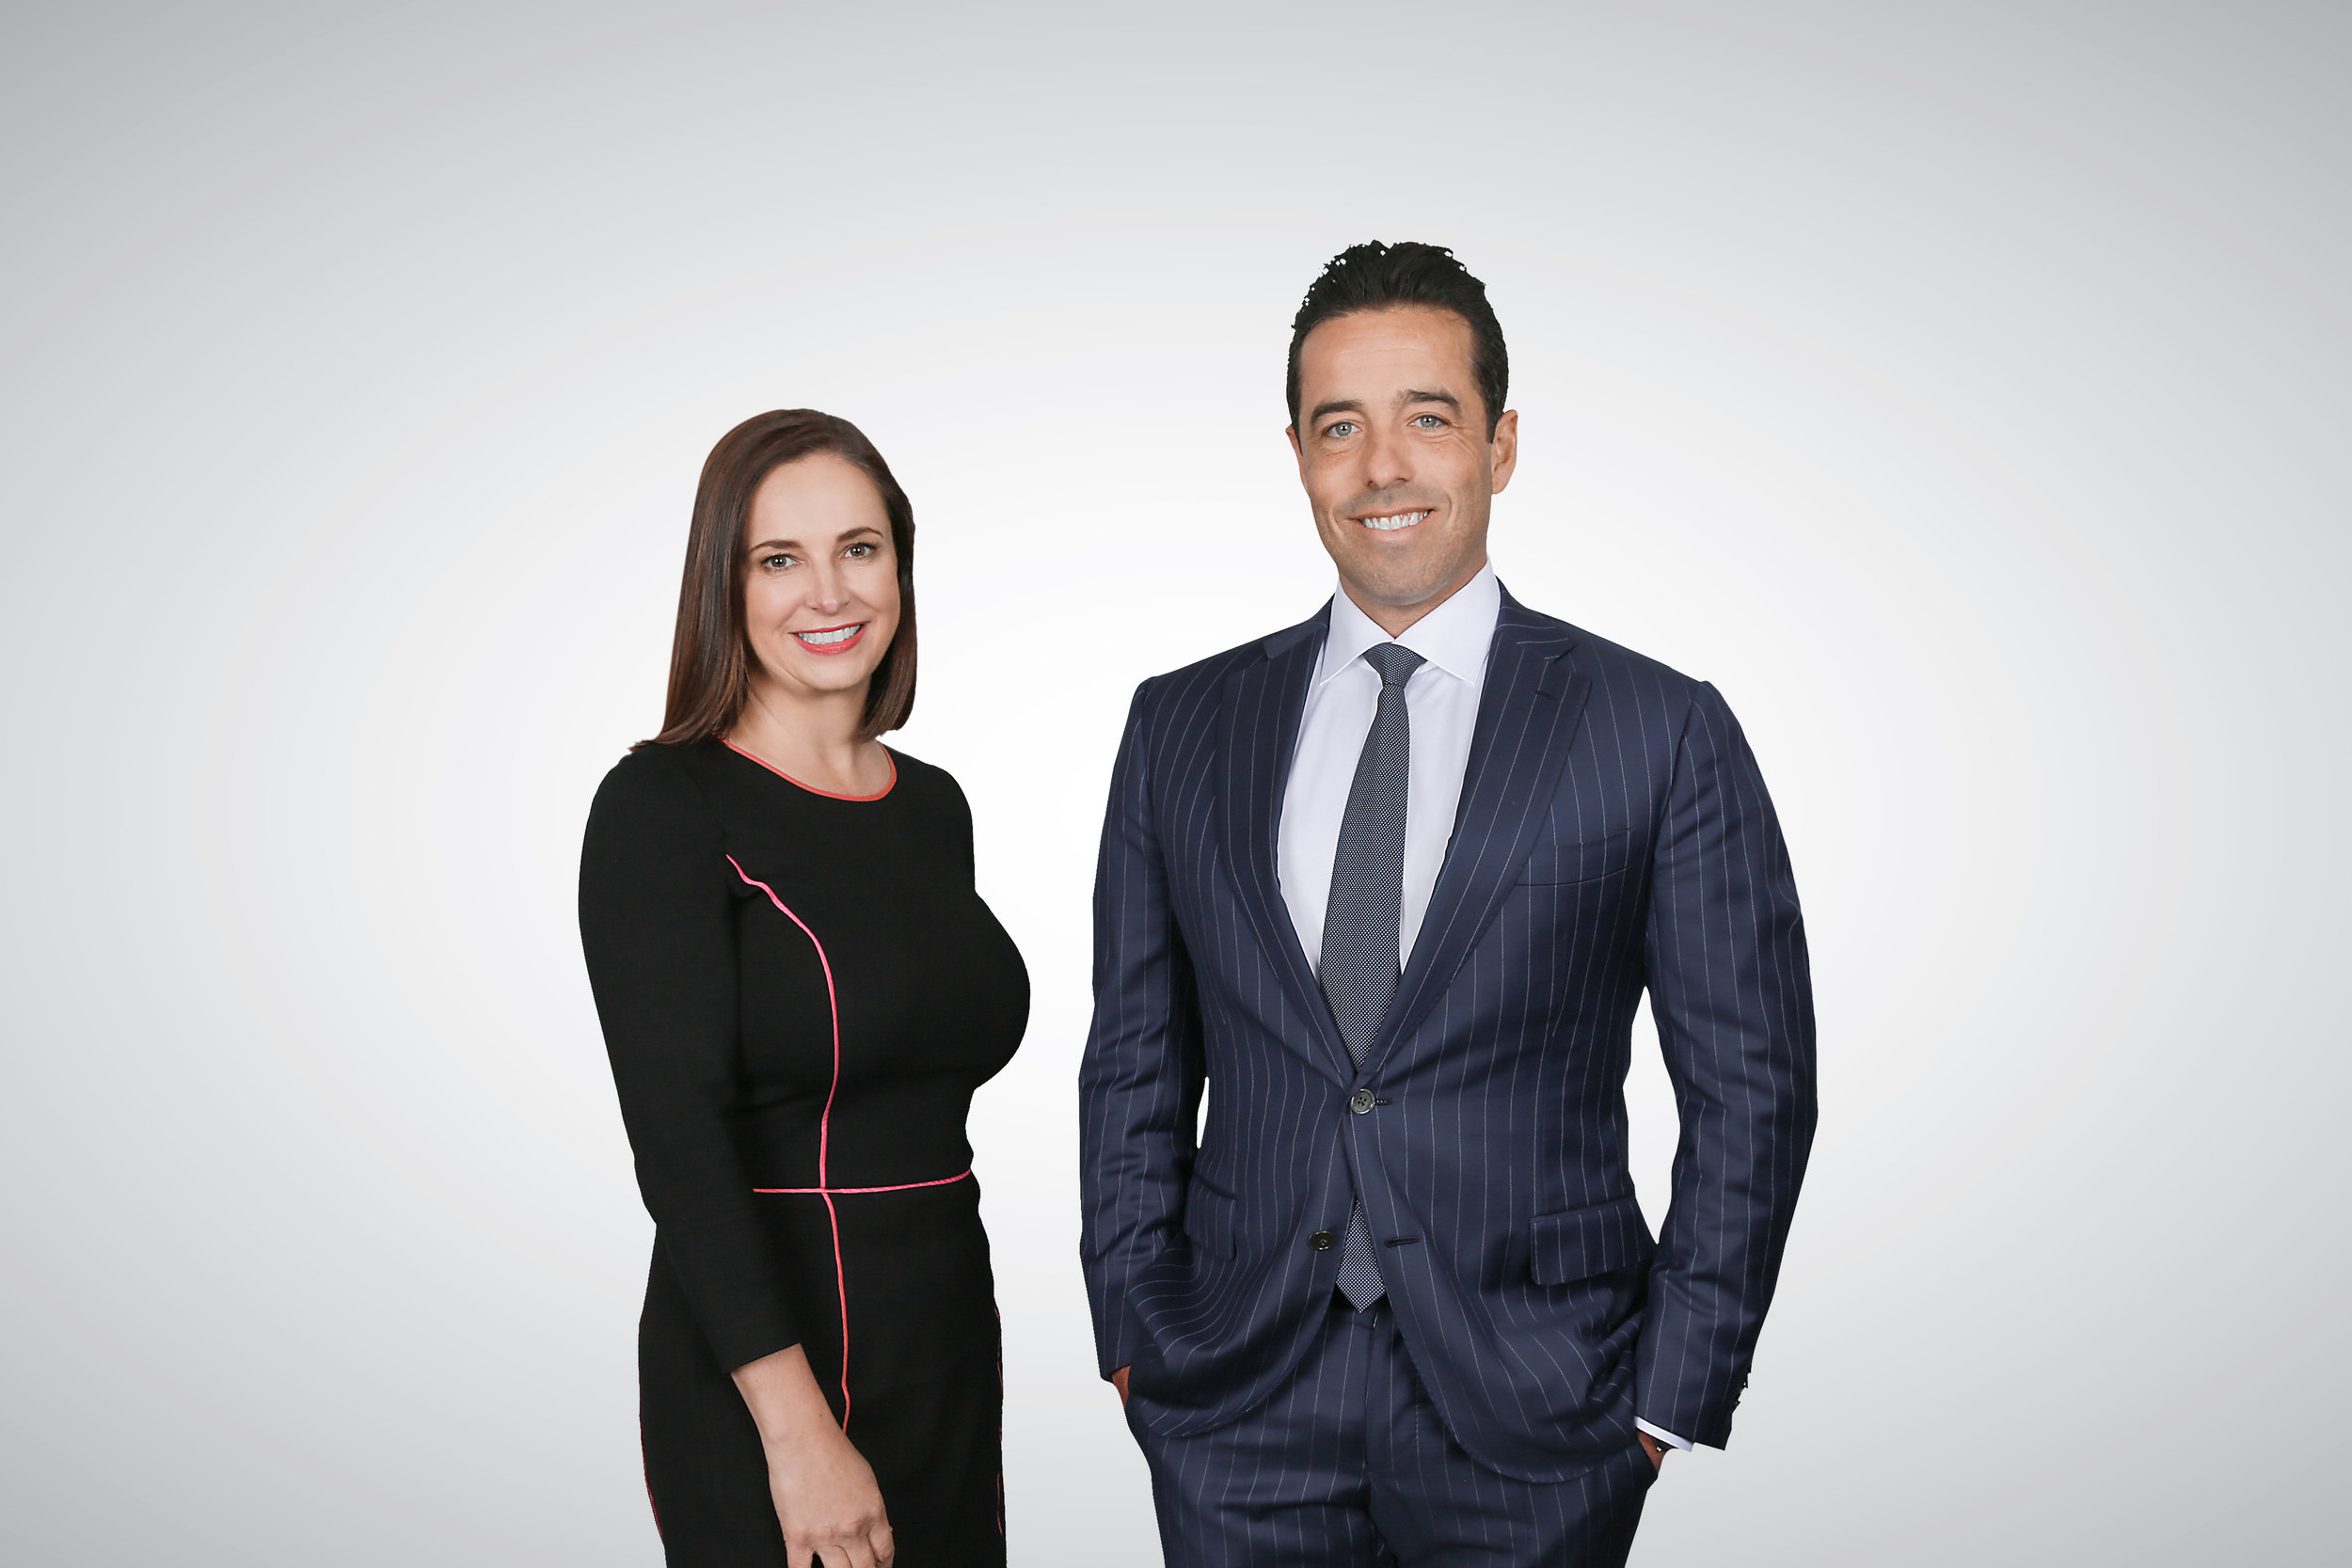 After much speculation, Mosman real estate agents Priscilla Schonell and Grant Simpson announced their new partnership today.